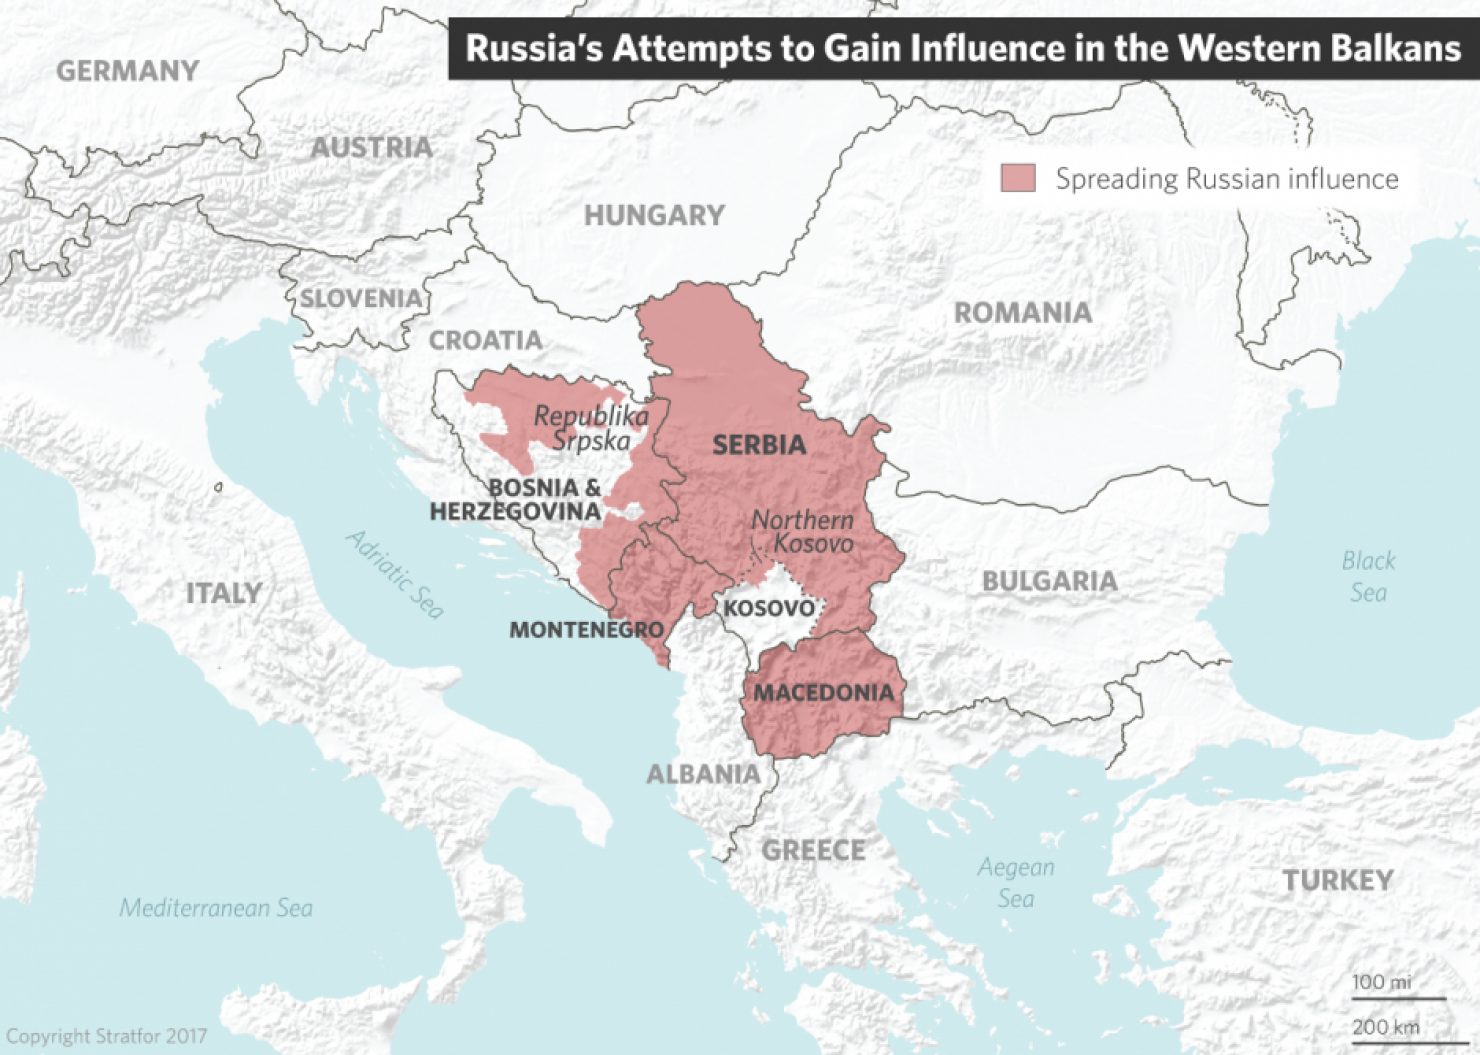 Russia's Attempts to Gain Influence in the Western Balkans